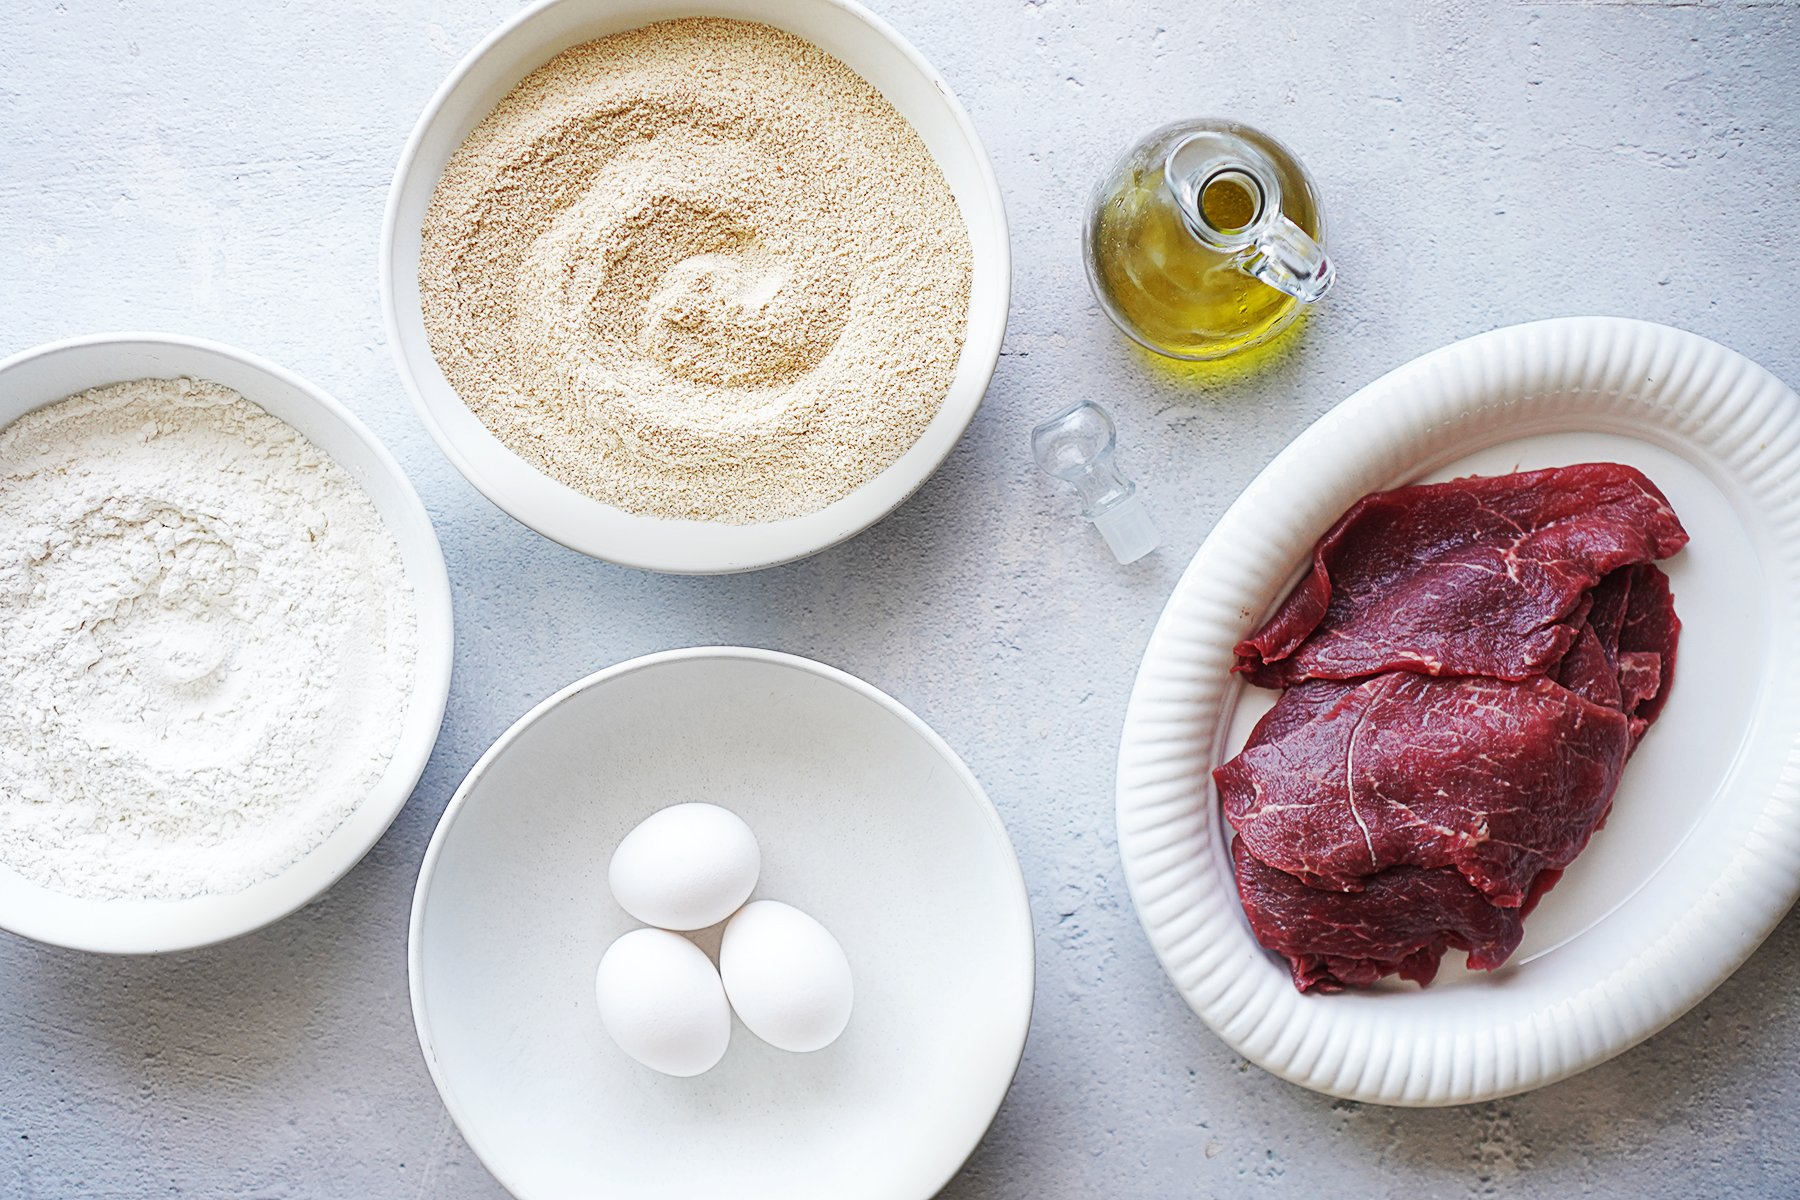 Ingredients in separate bowls: flour, breadcrumbs, three eggs, oil and thin steaks